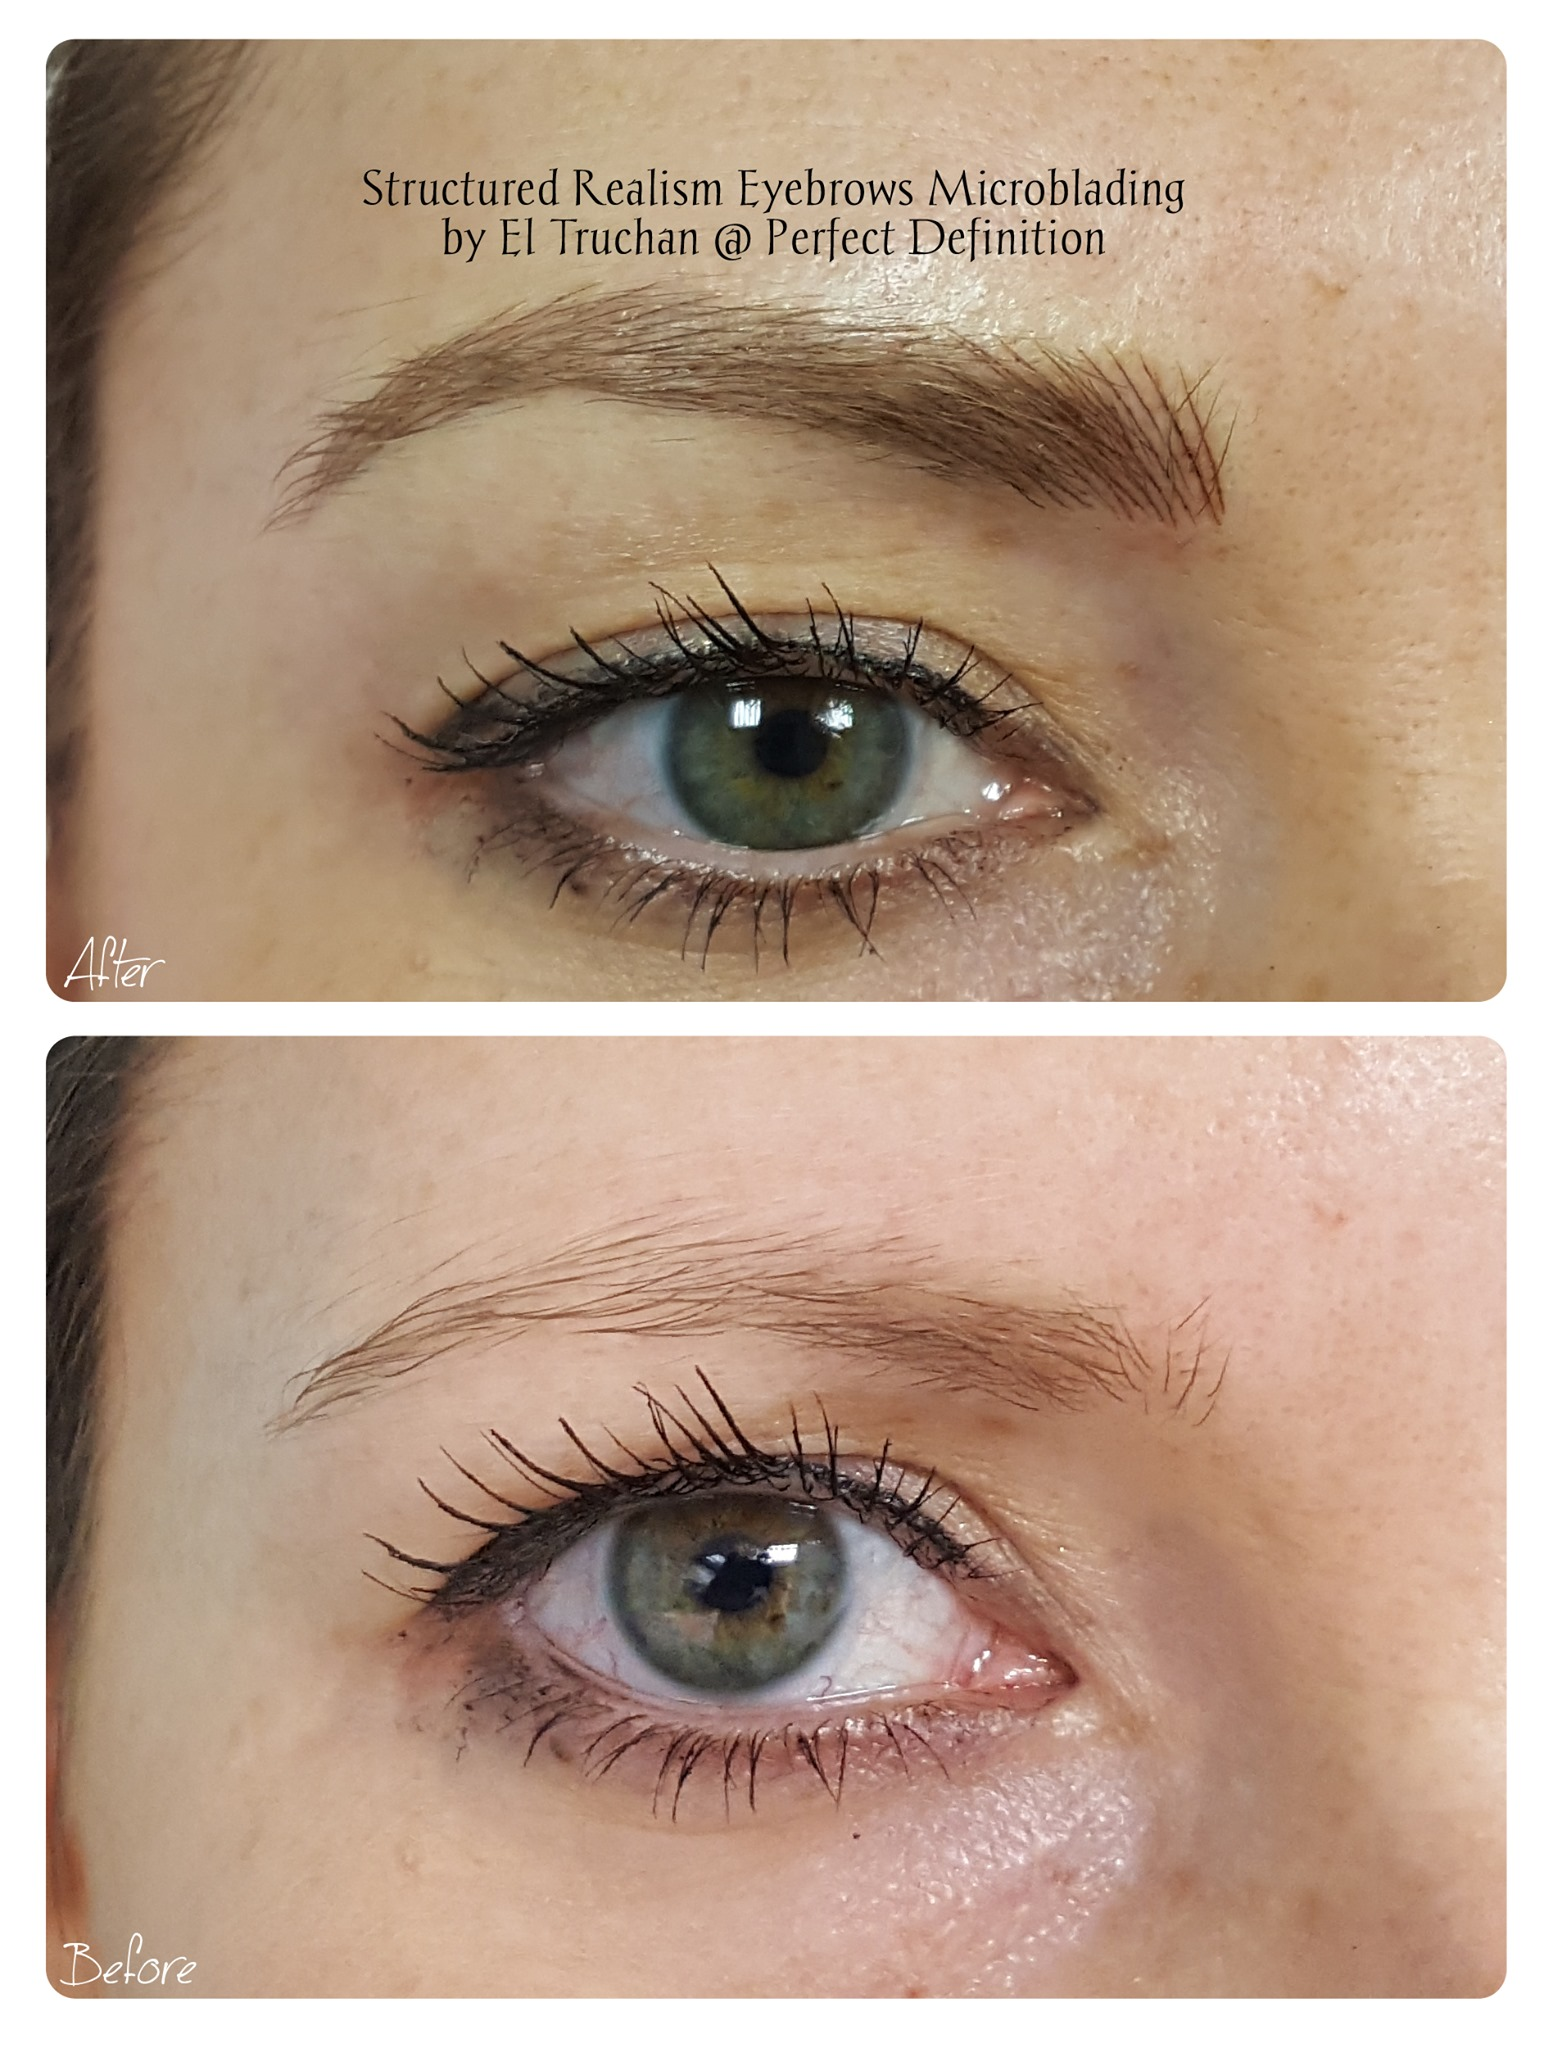 Structured Realism Eyebrows Microblading